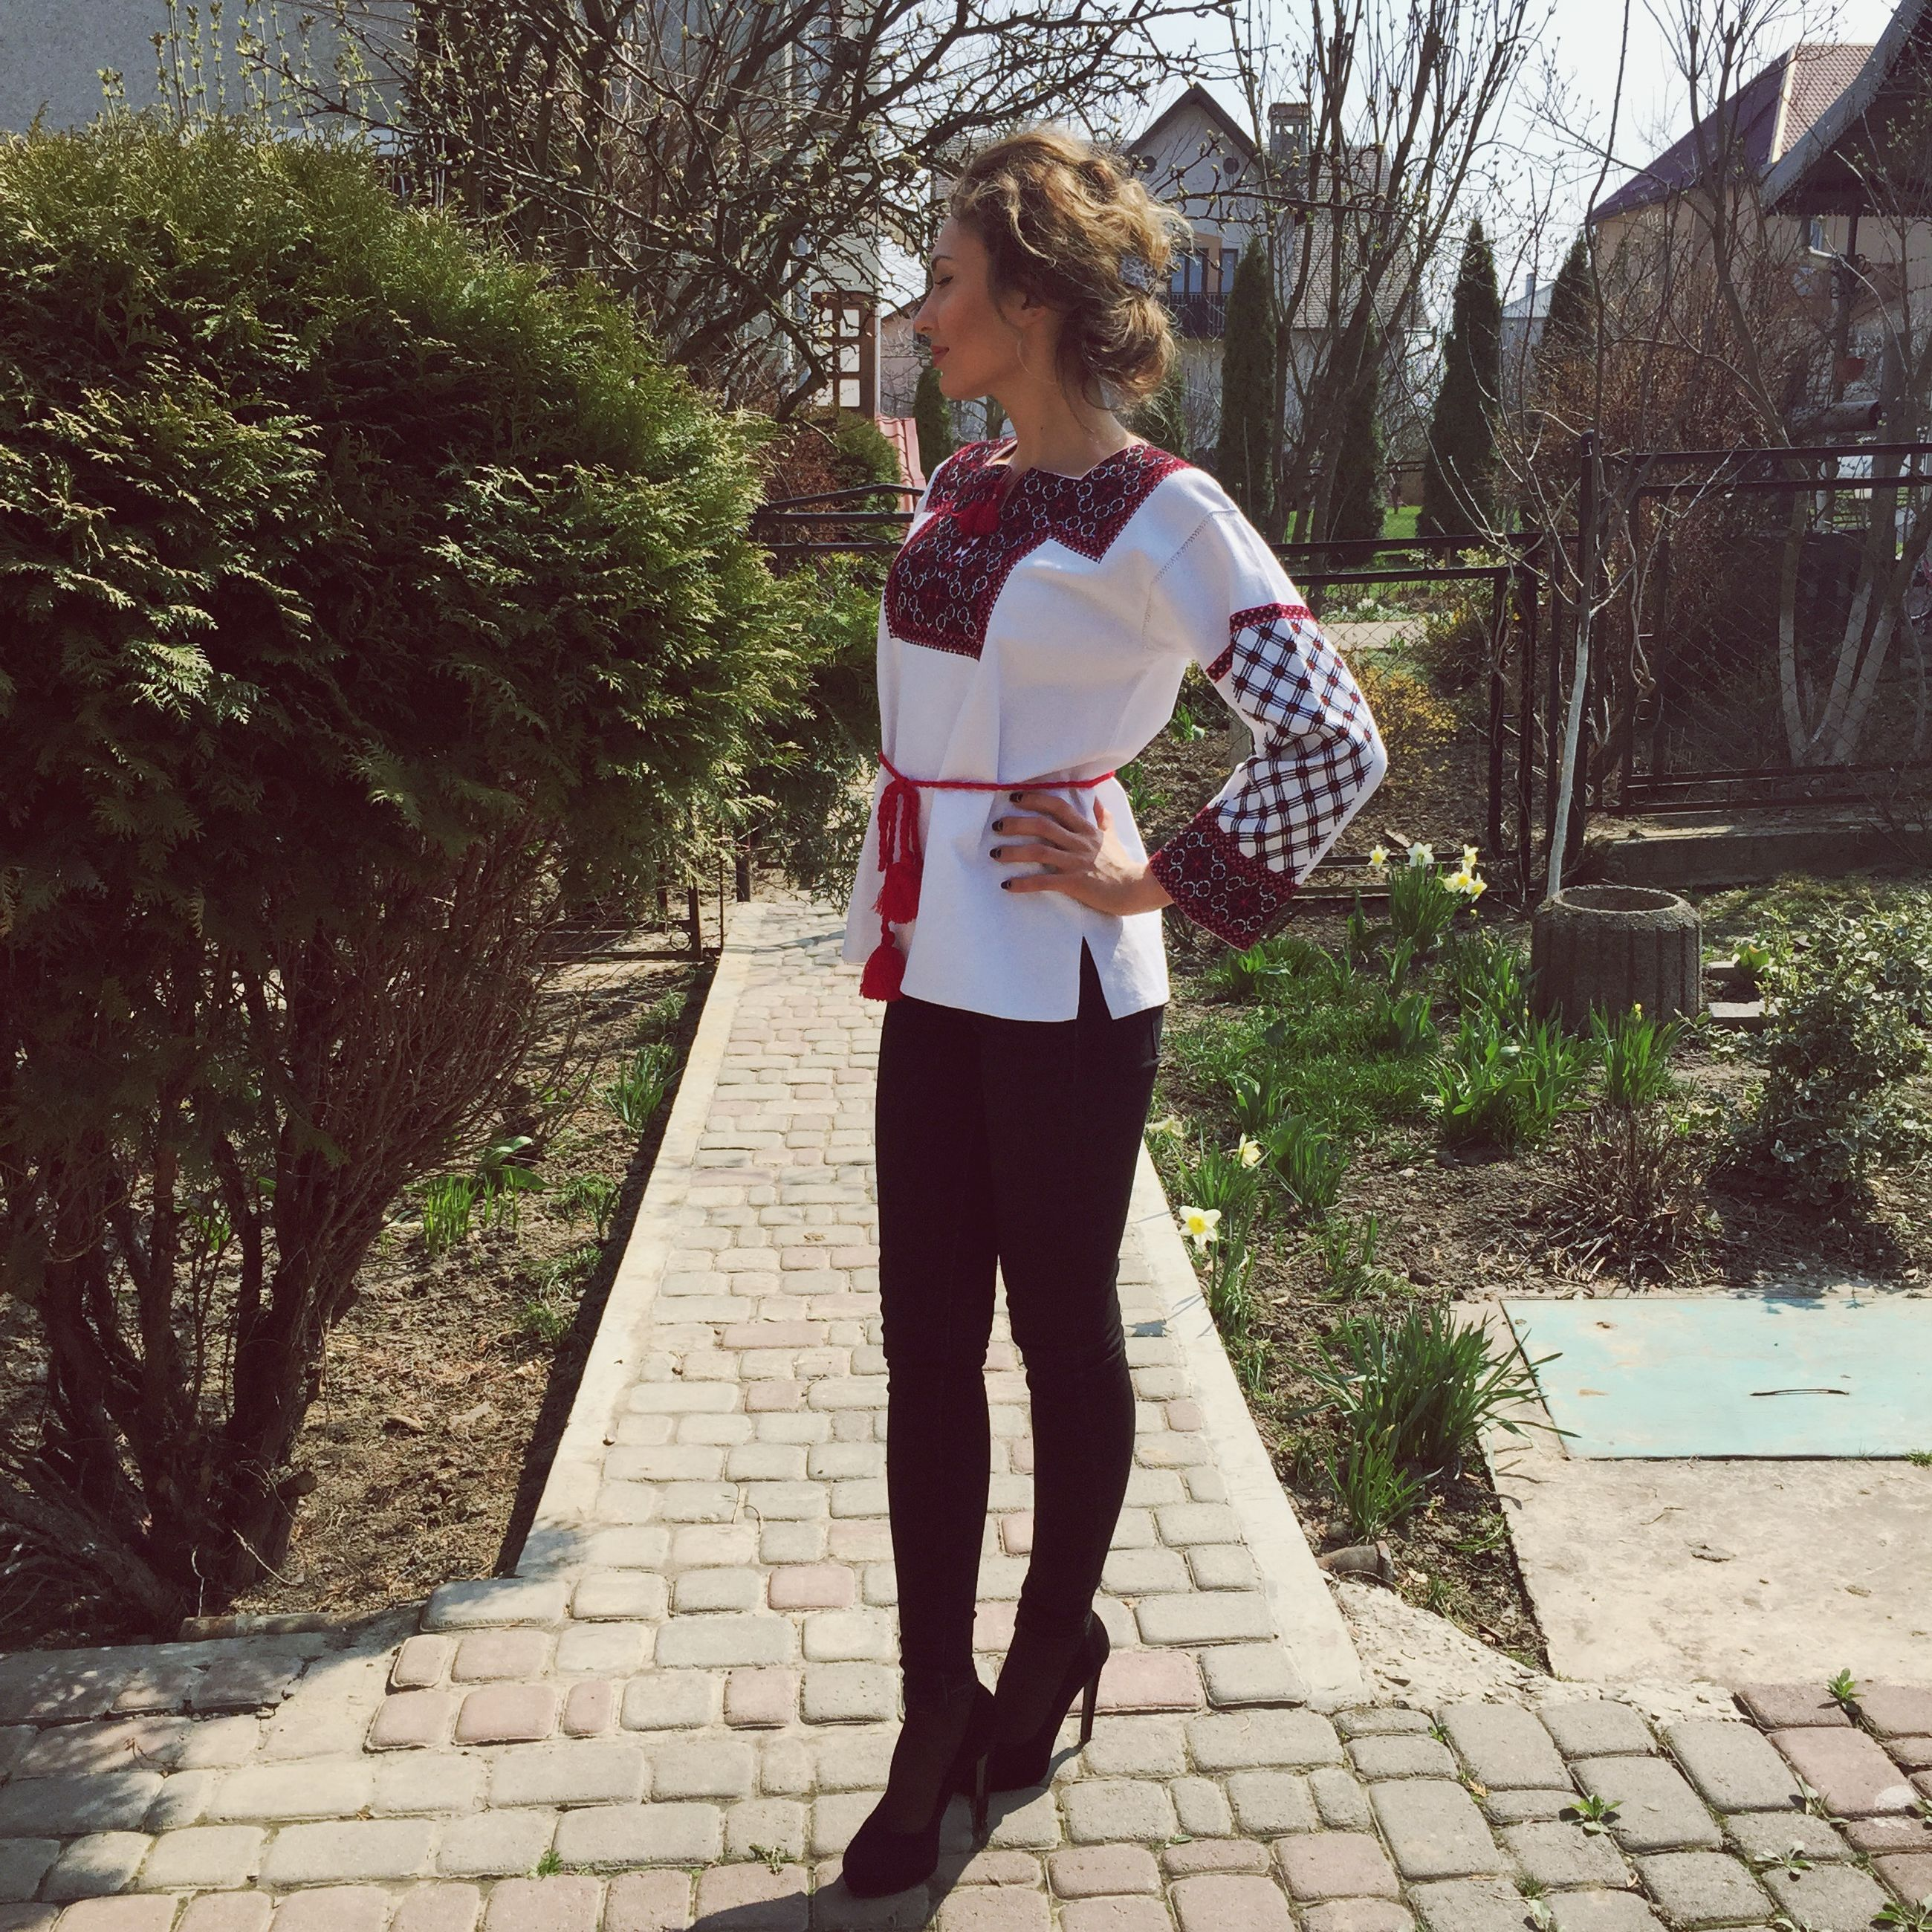 full length, lifestyles, casual clothing, person, leisure activity, young adult, young women, front view, childhood, standing, girls, tree, sunlight, footpath, elementary age, park - man made space, looking at camera, day